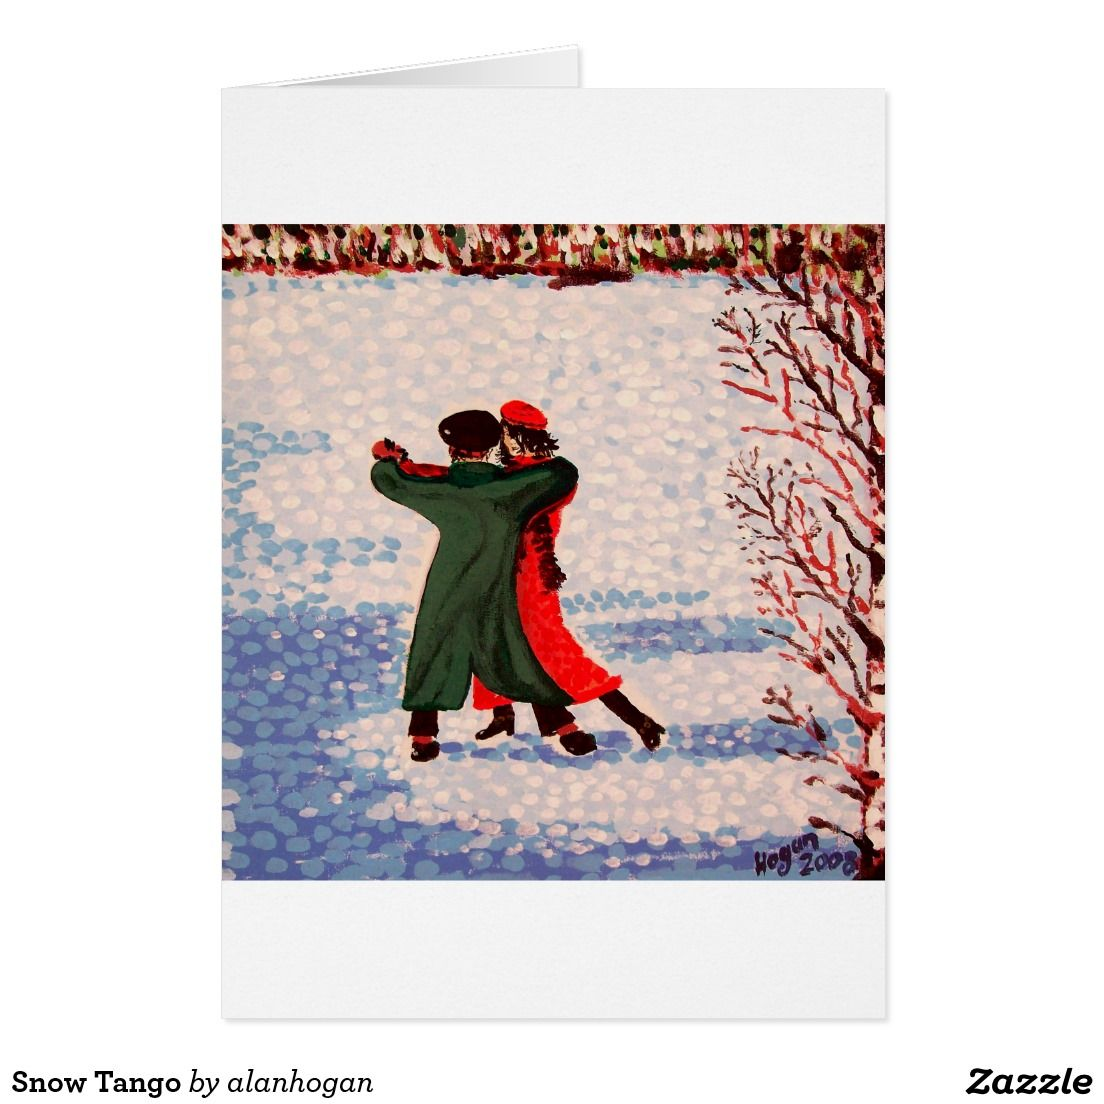 Snow tango card zazzle and get 20 off with code zwintervacay snow tango card zazzle and get 20 off with code zwintervacay itstheholidayseason kristyandbryce Gallery